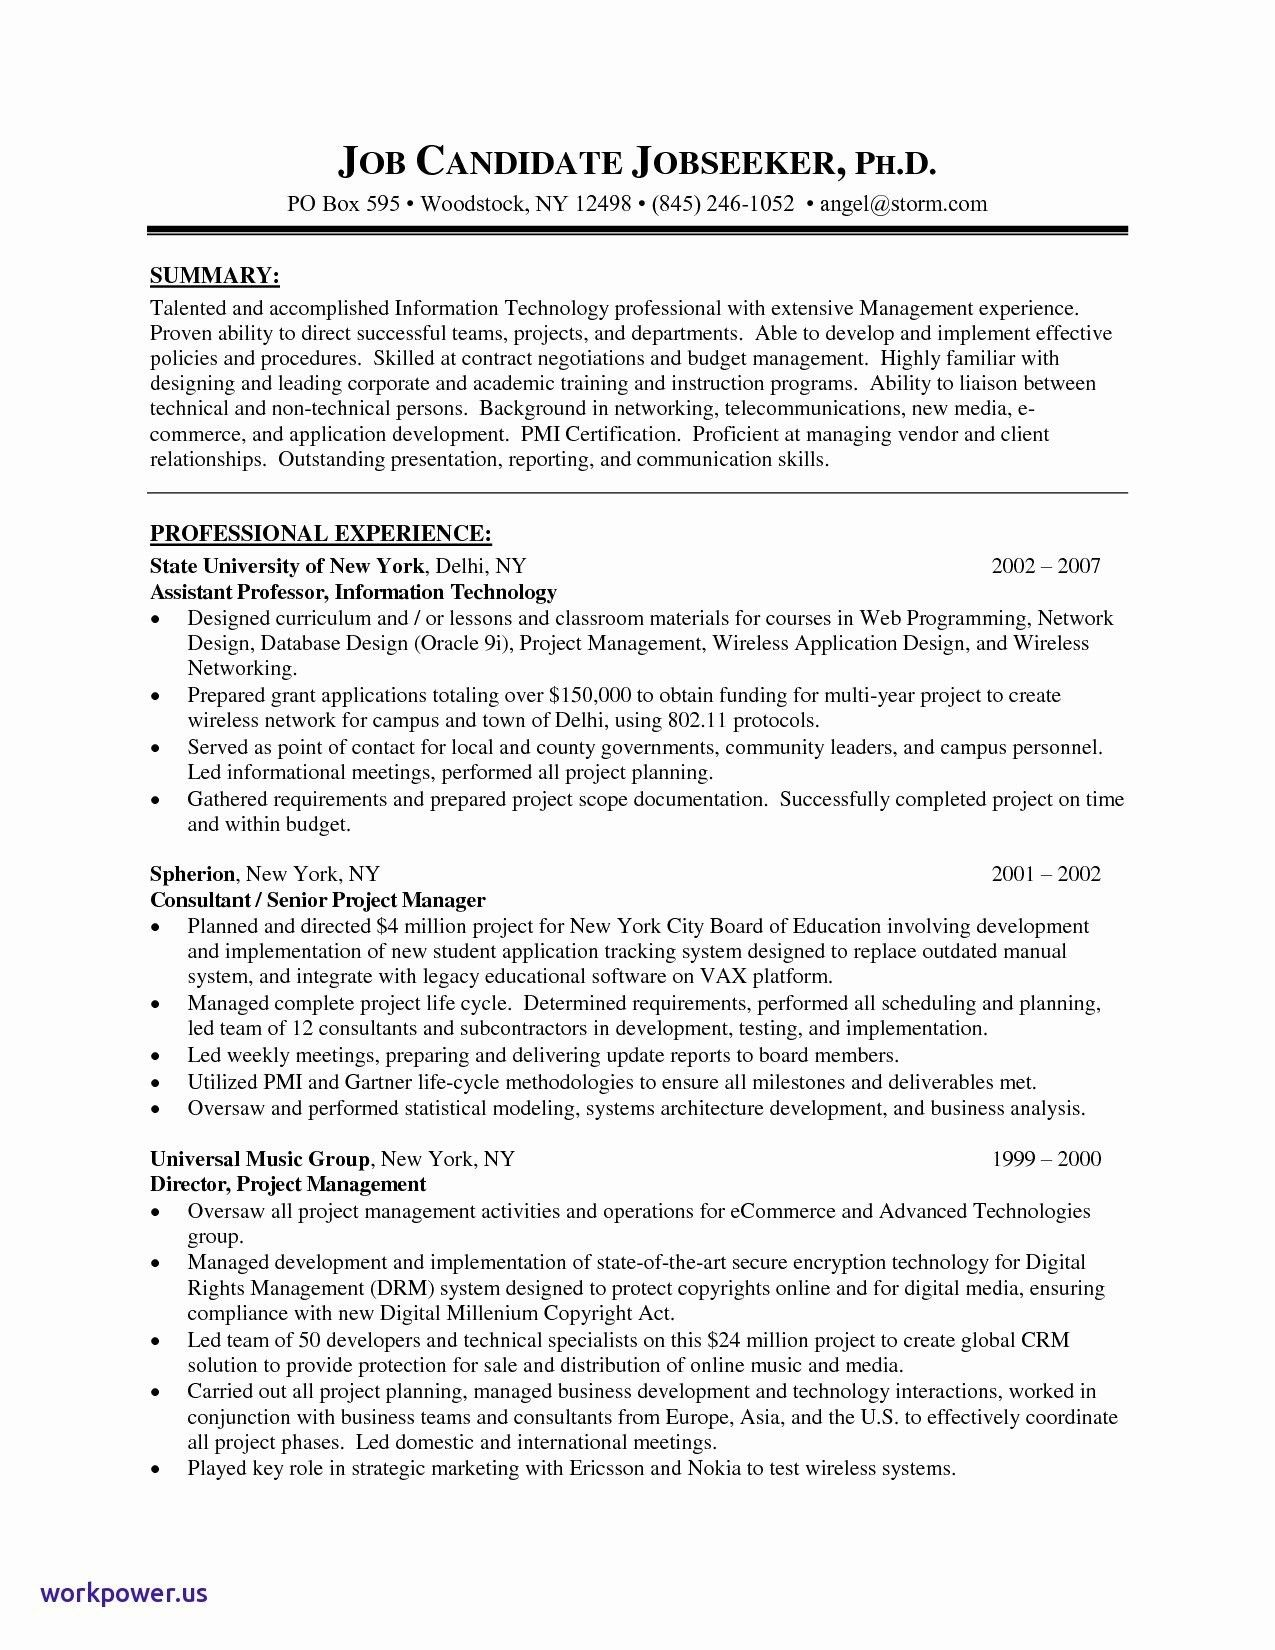 Cv Template Tamu Resume Examples Resume Templates Project Manager Resume